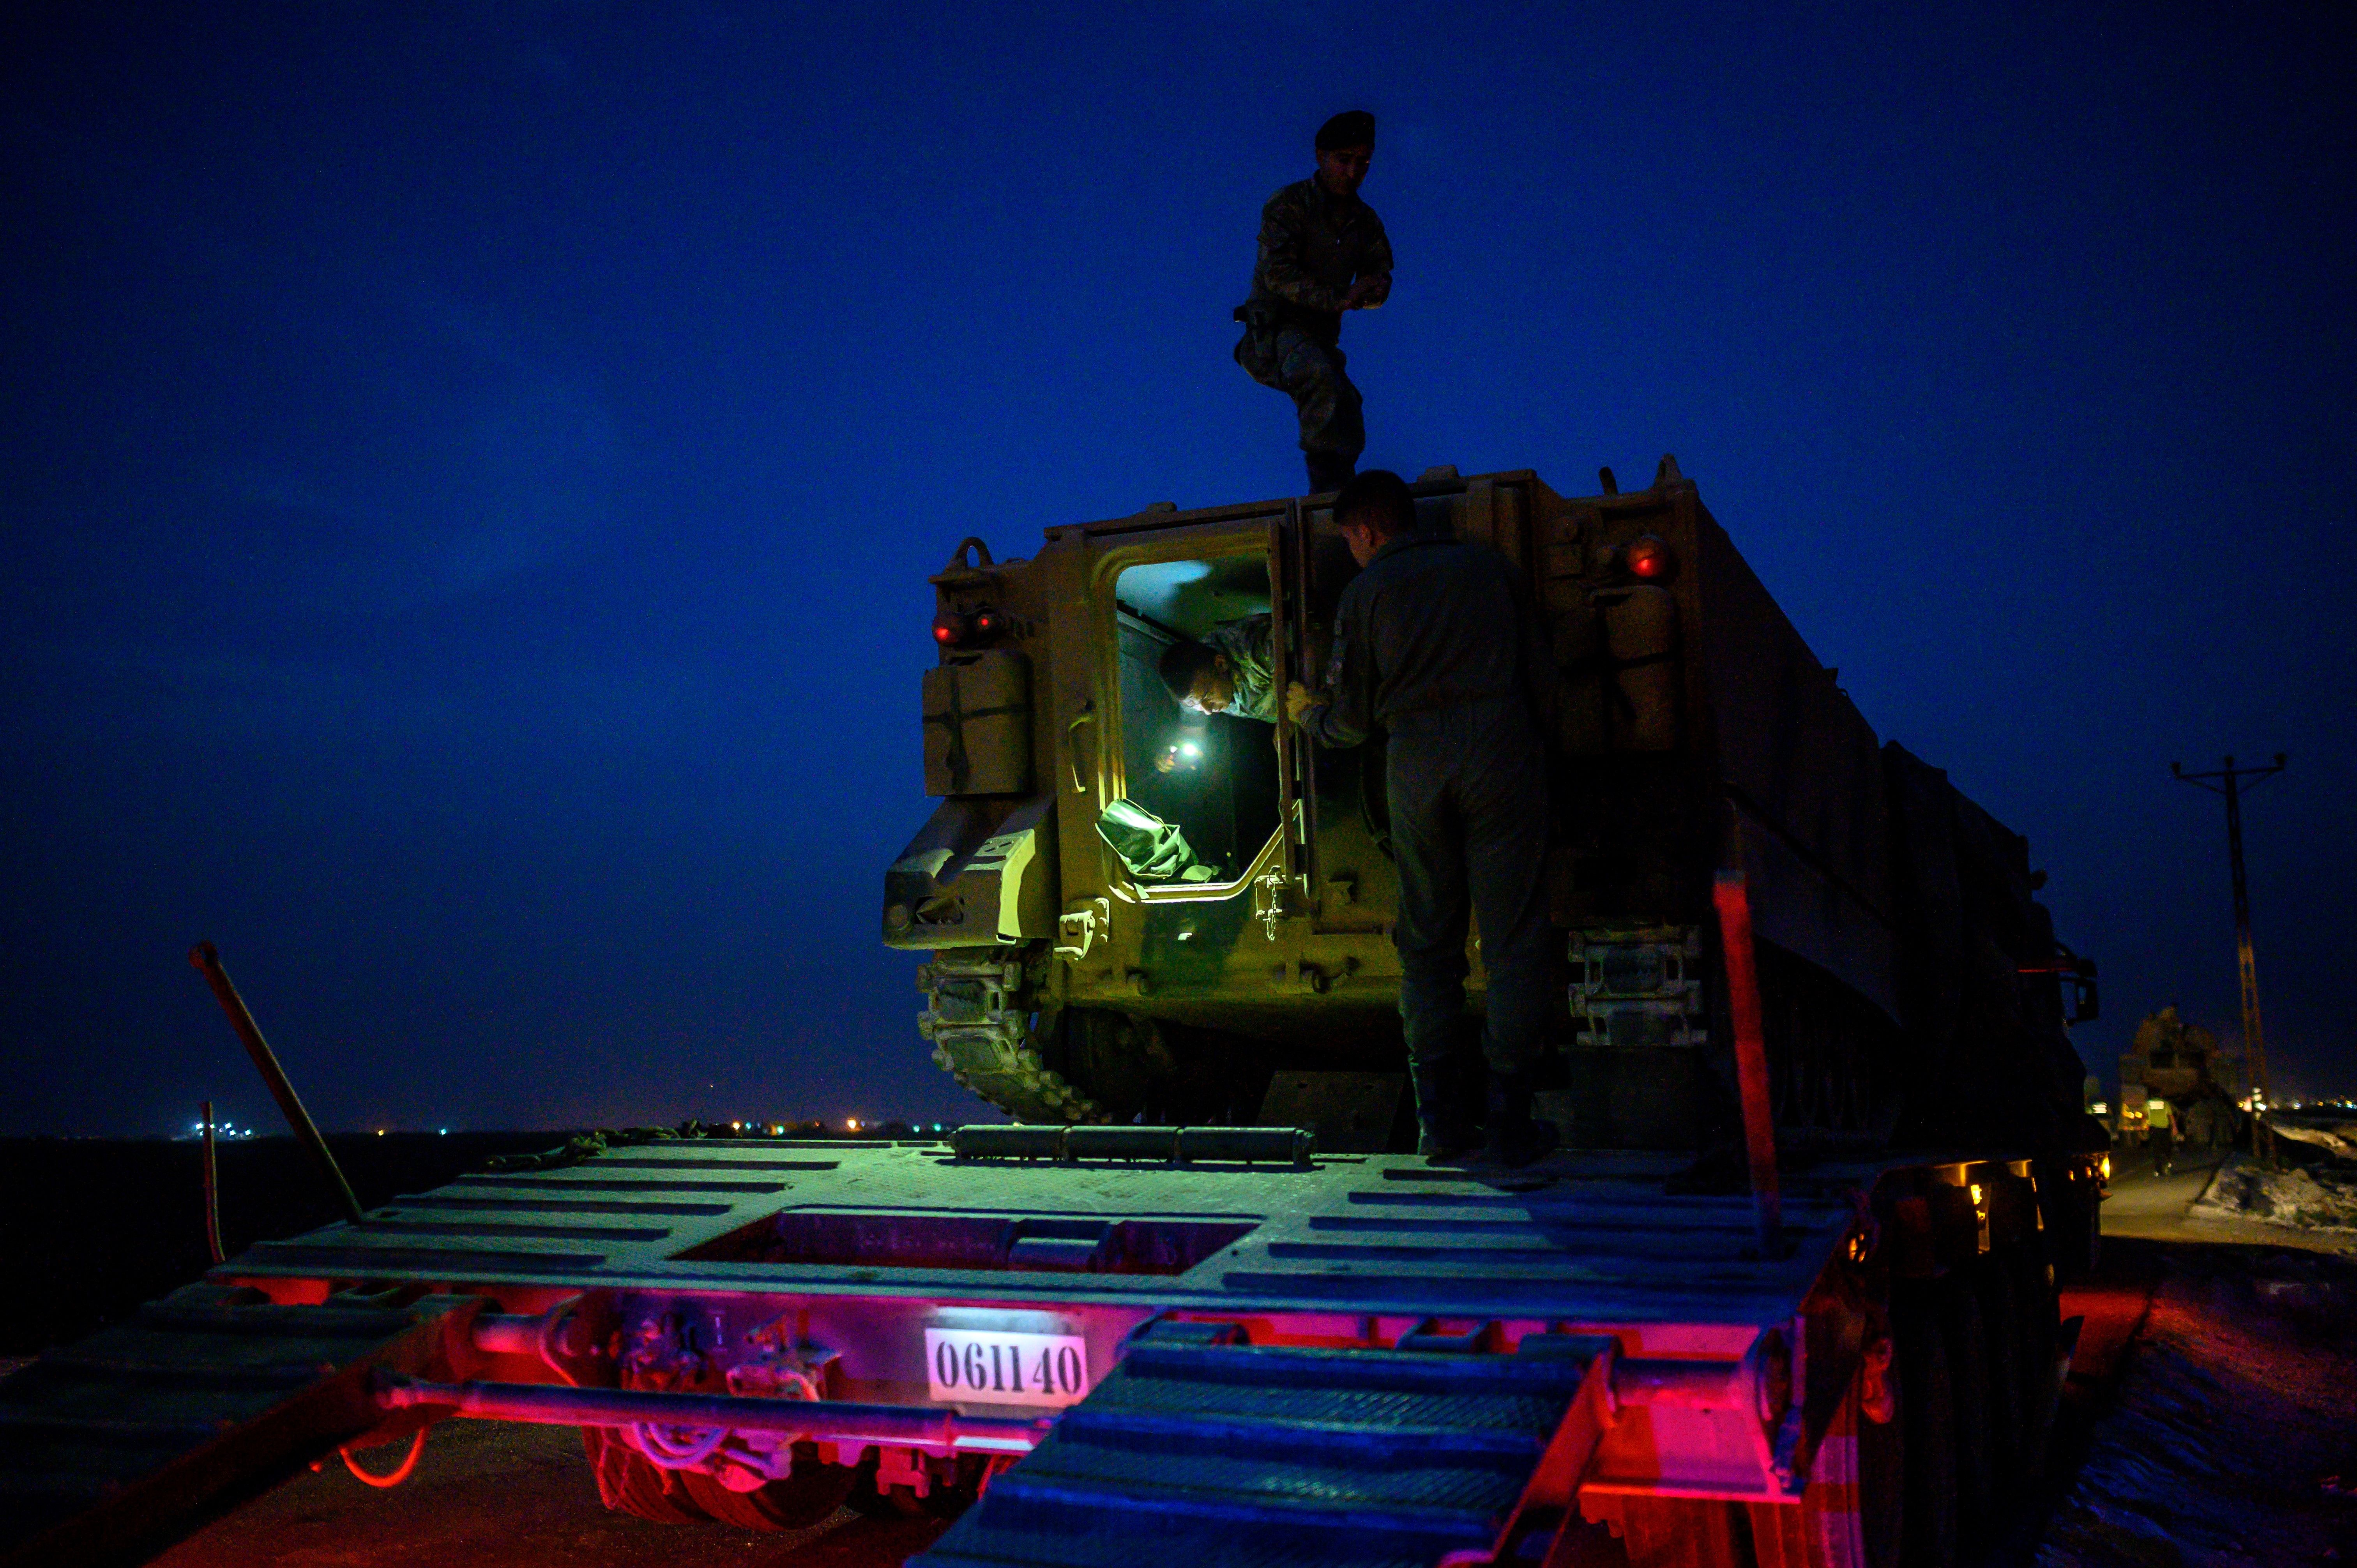 "Turkish soldiers prepare an armored vehicle as Turkish armed forces drive towards the border with Syria near Akcakale in Sanliurfa province on October 8, 2019. - Turkey said on October 8, 2019, it was ready for an offensive into northern Syria, while President Donald Trump insisted the United States had not abandoned its Kurdish allies who would be targeted in the assault. Trump has blown hot and cold since a surprise announcement two days before that Washington was pulling back 50 to 100 ""special operators"" from Syria's northern frontier. (Photo by BULENT KILIC / AFP) (Photo by BULENT KILIC/AFP via Getty Images)"